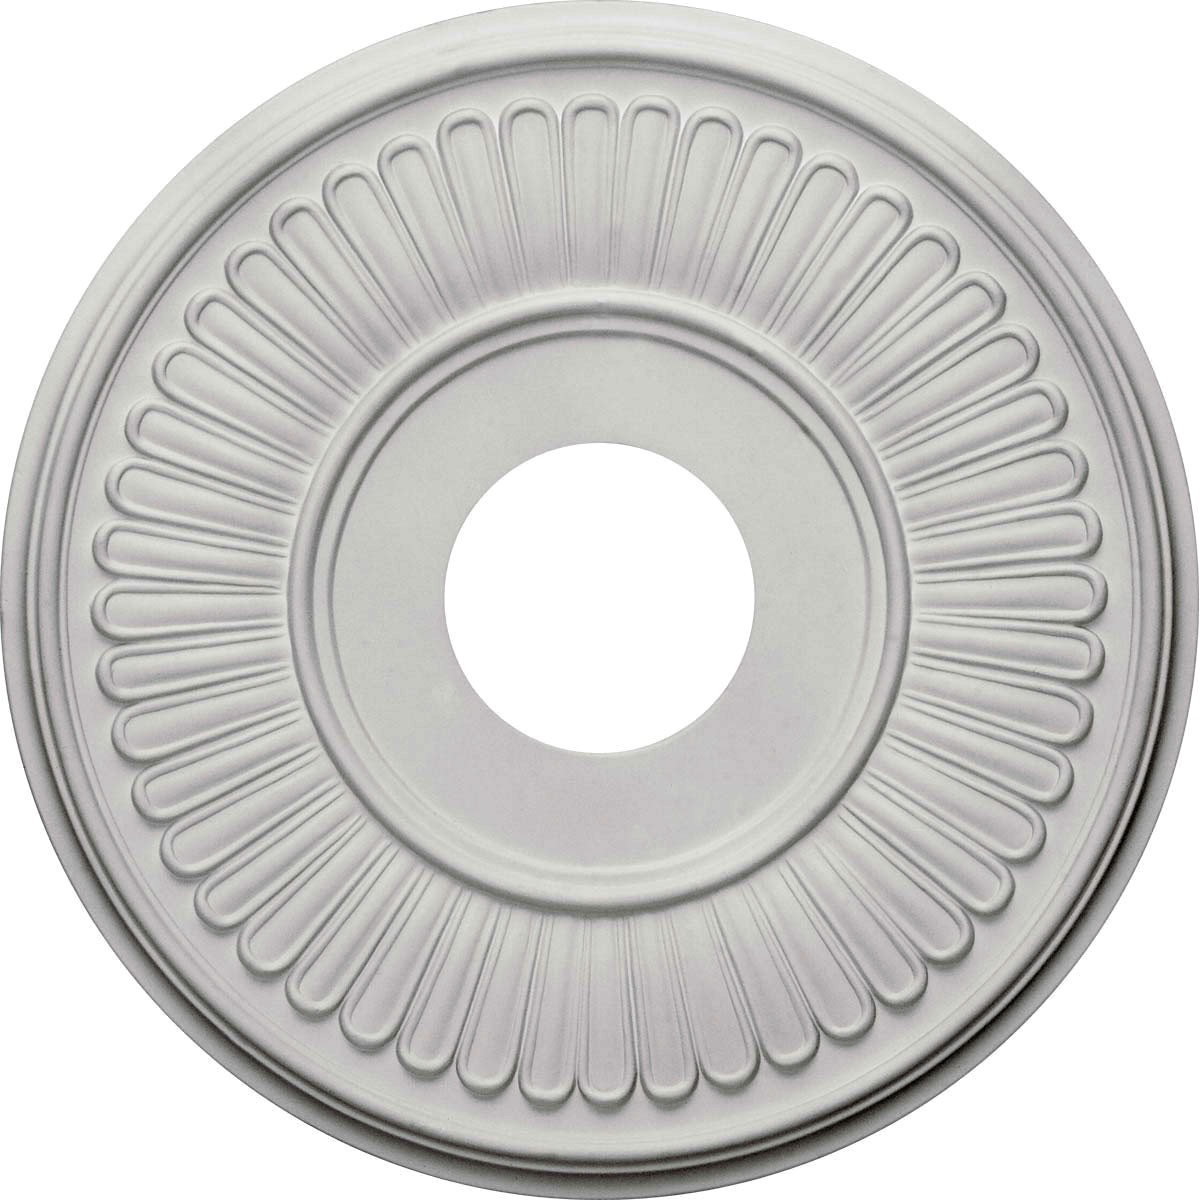 """EM-CM15BE - 15 3/4""""OD x 3 7/8""""ID x 3/4""""P Berkshire Ceiling Medallion (Fits Canopies up to 7"""")"""